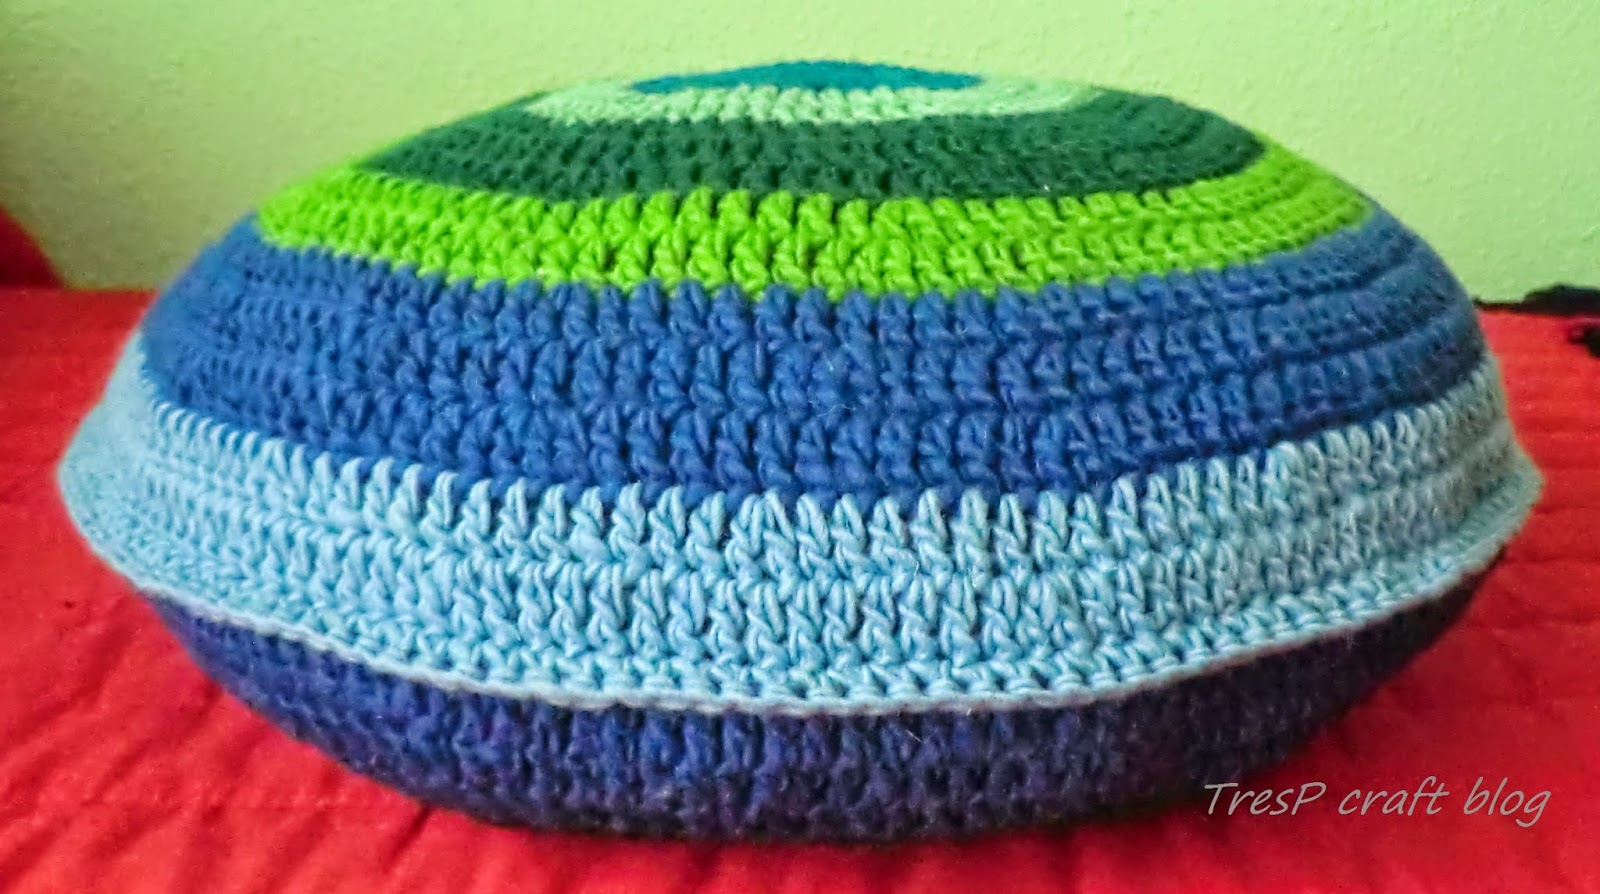 TresP craft blog: COJÍN REDONDO DE CROCHET/GANCHILLO